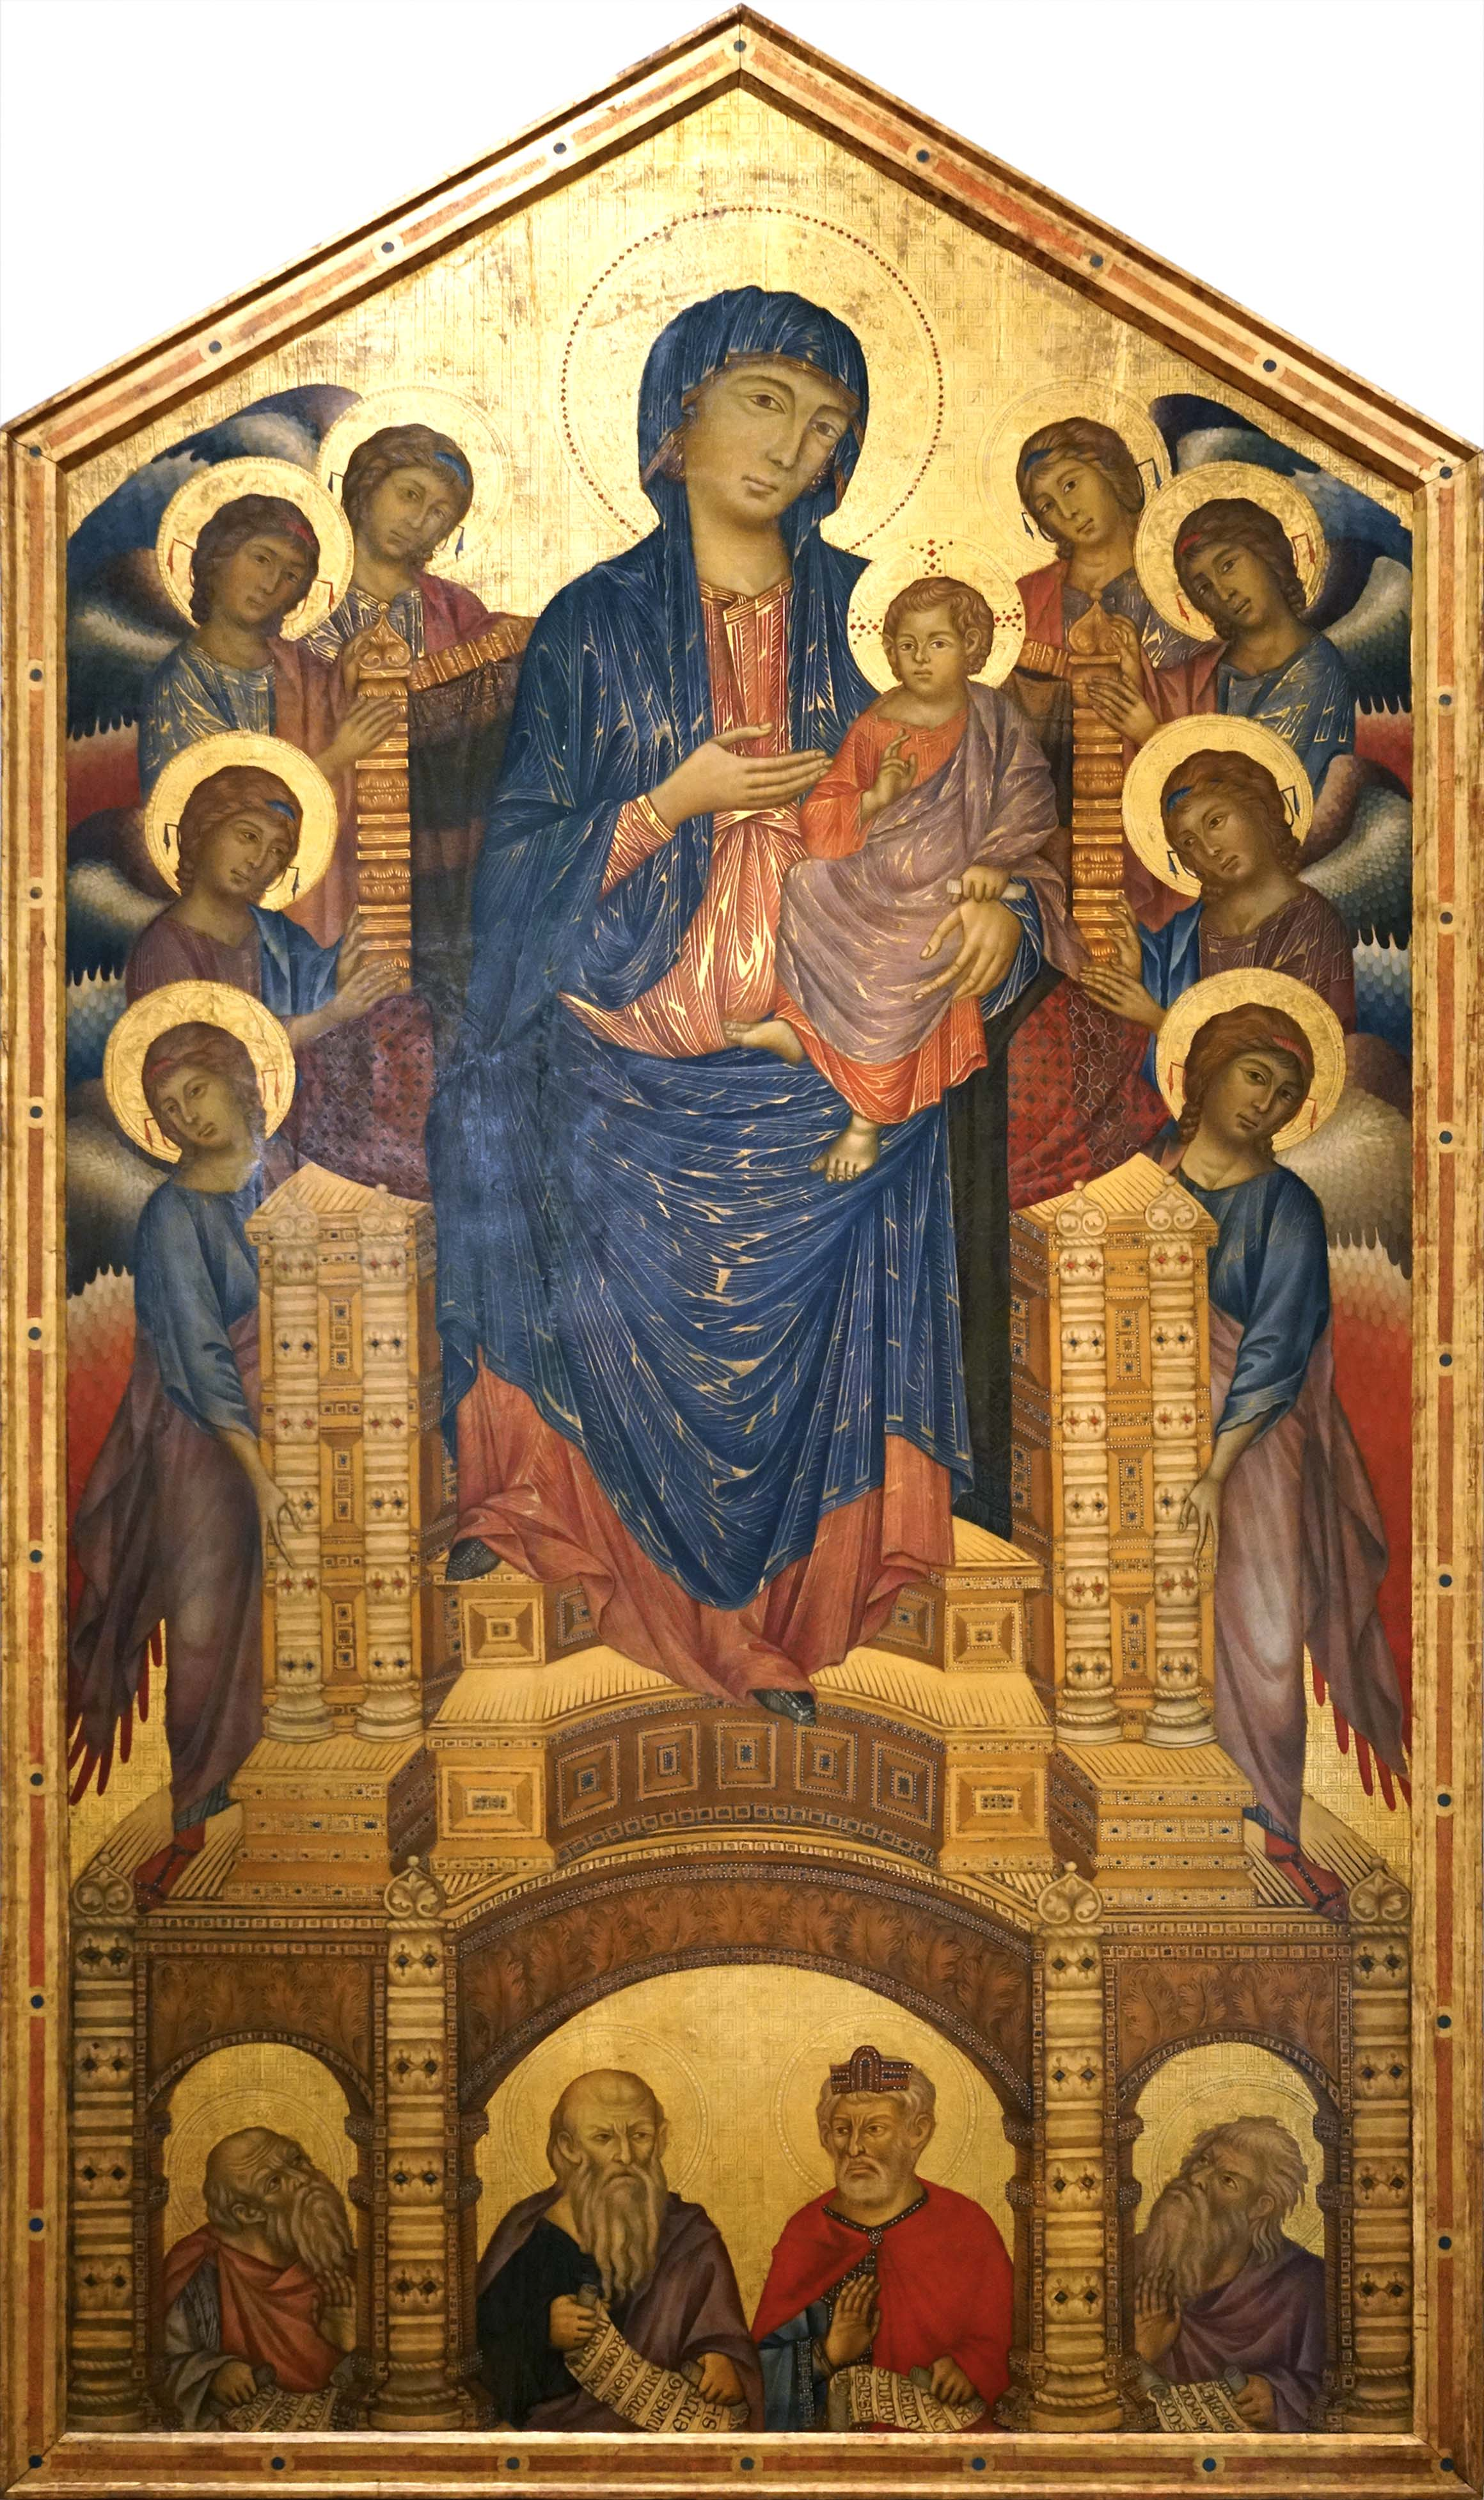 Cimabue Madonna Enthroned With Angels And Prophets : cimabue, madonna, enthroned, angels, prophets, Cimabue,, Virgin, Child, Enthroned,, Prophets, (Santa, Trinità, Maestà), Smarthistory